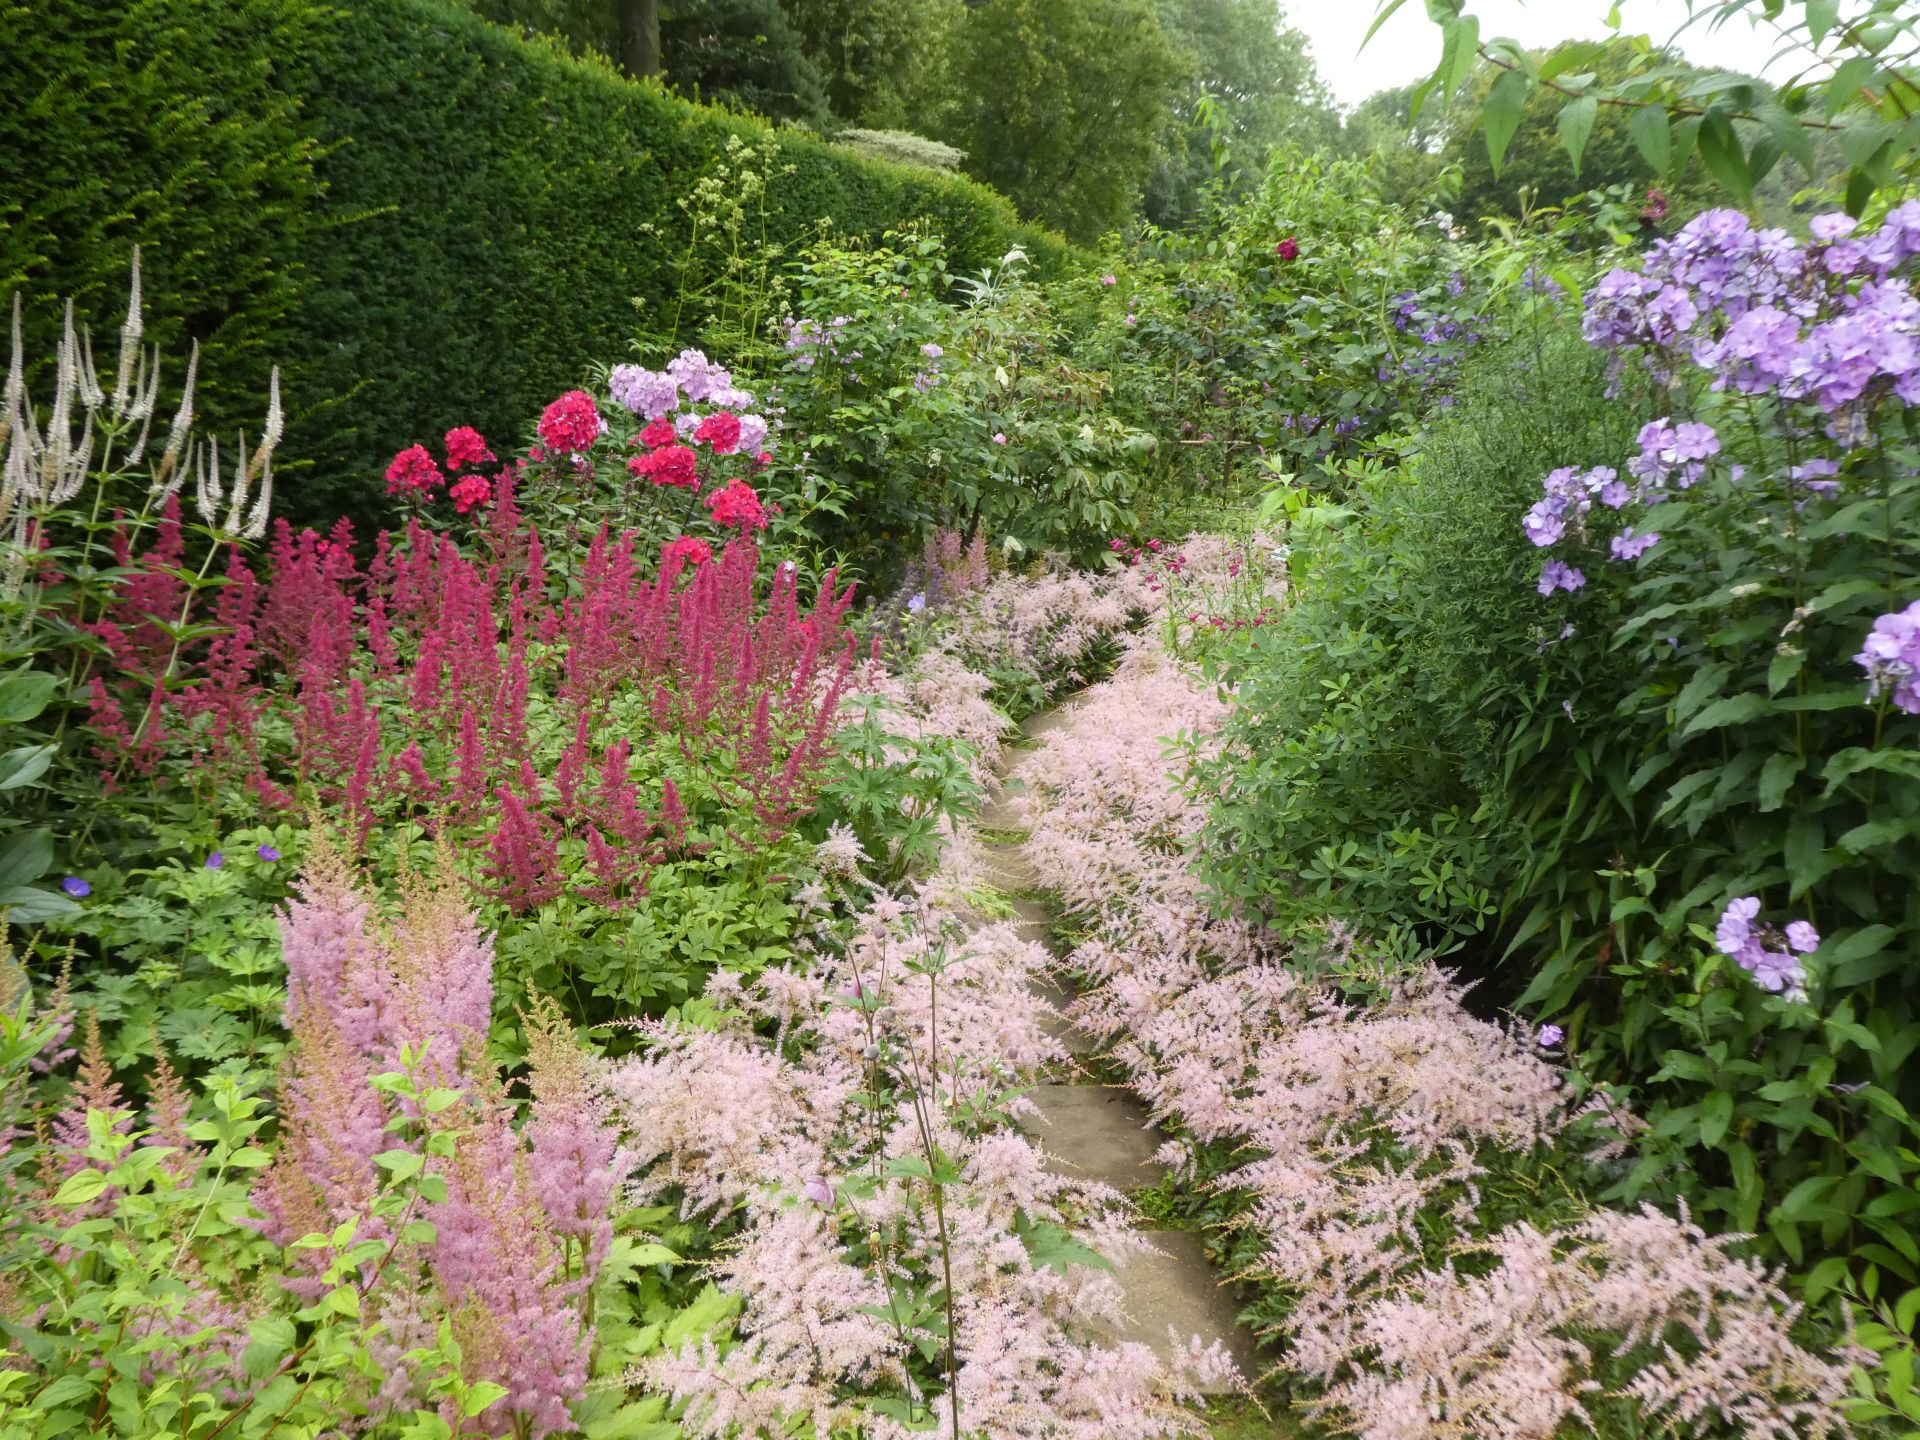 Astilbe Sprite edging the path.